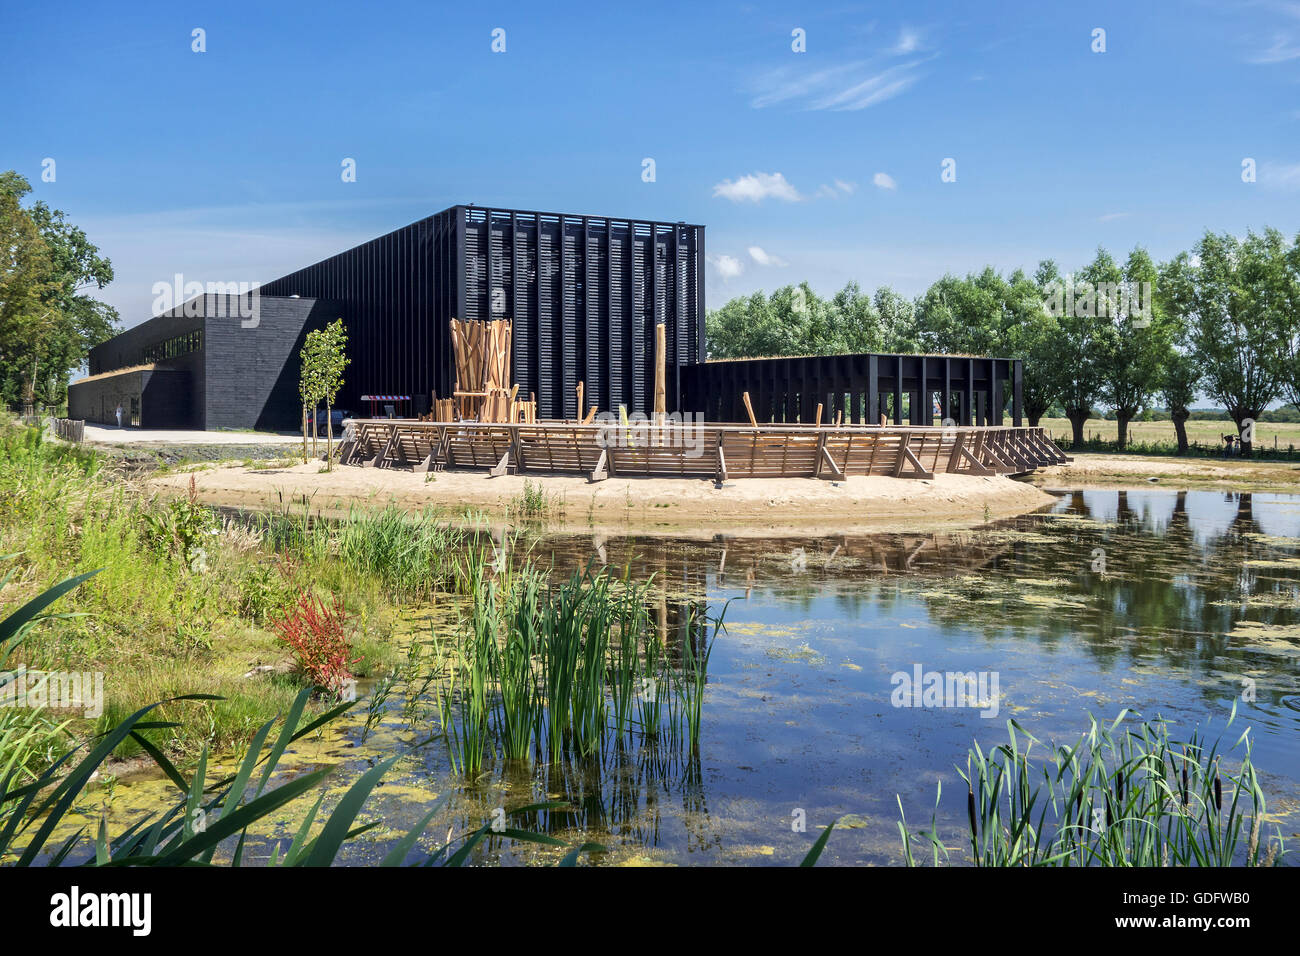 Visitors centre / Visitor center of the Zwin Nature Park, bird sanctuary at Knokke-Heist, West Flanders, Belgium - Stock Image